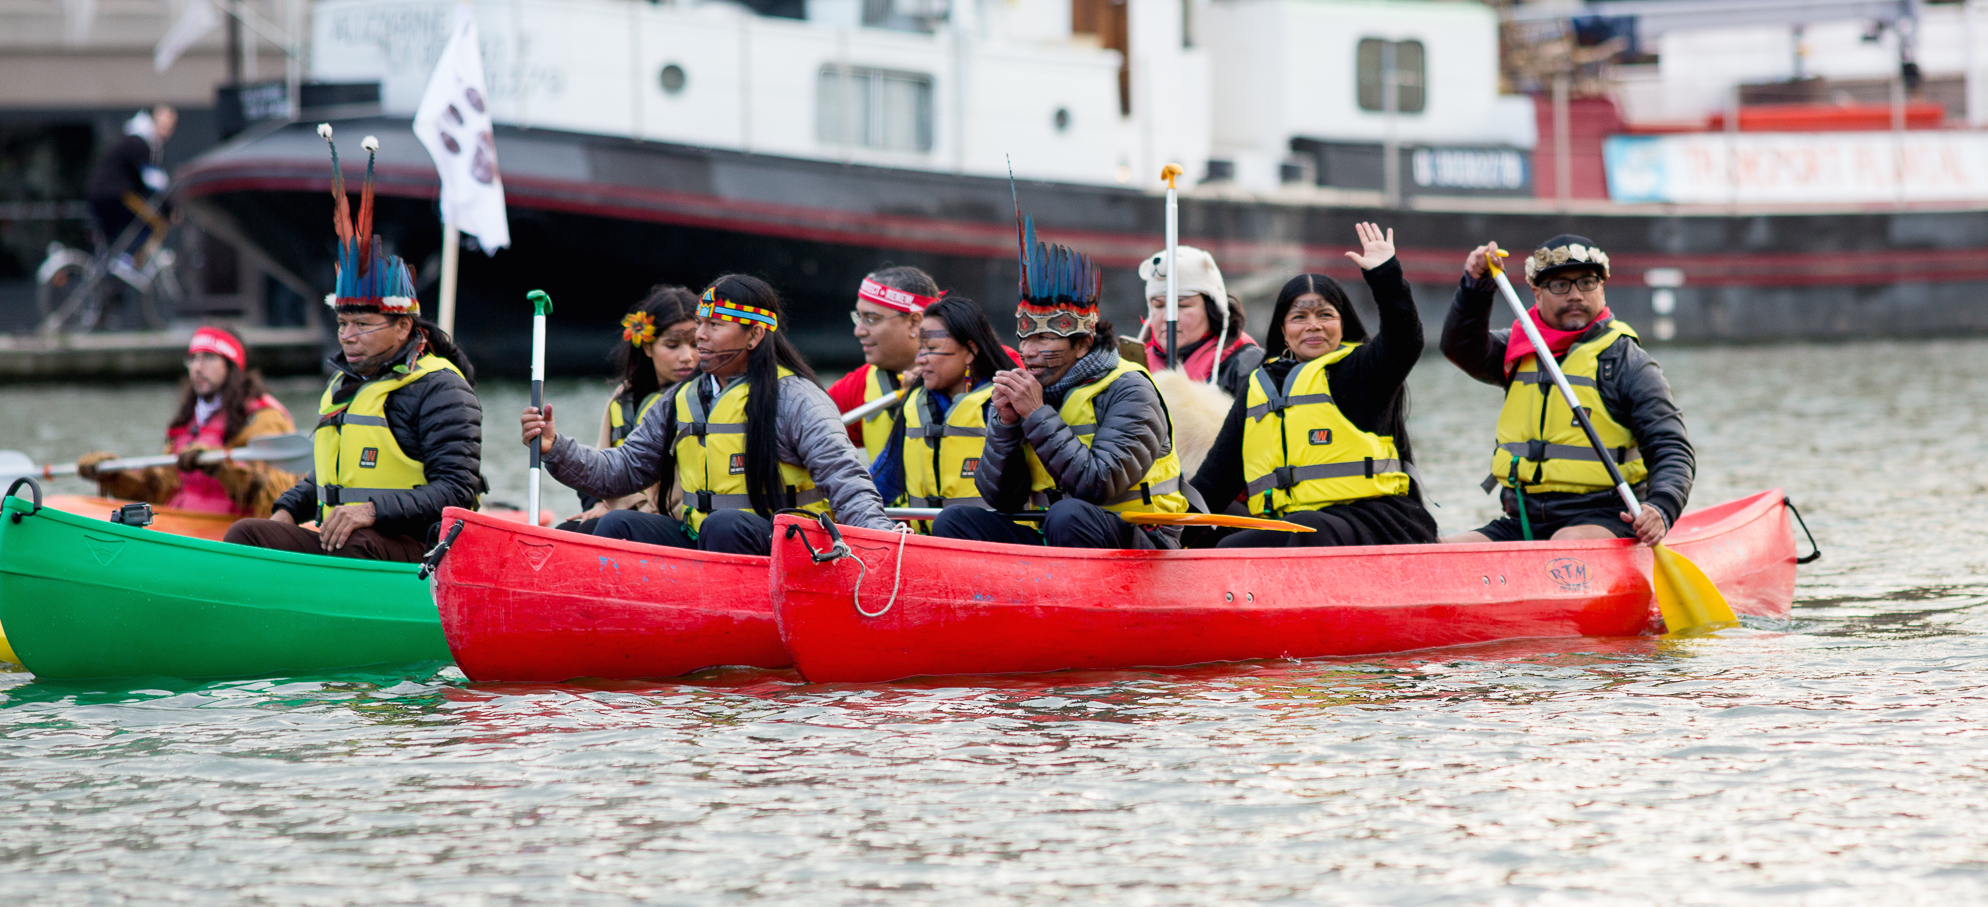 "PARIS, FRANCE-- Indigenous Peoples from the Arctic to the Amazon gathered to demand ""true climate solutions including bottom up initiatives originating in Indigenous knowledge, culture, and spirituality."" The Indigenous flotilla canoed and kayaked on the Bassin de la Villette during COP21 in Paris. On December 6, 2015, the COP21 entered its 7th day of negotiations at the United Nations Climate Change conference. The COP21 is being held in Paris, France, at the Le Bourget conference center. Photos by: Emma Cassidy 